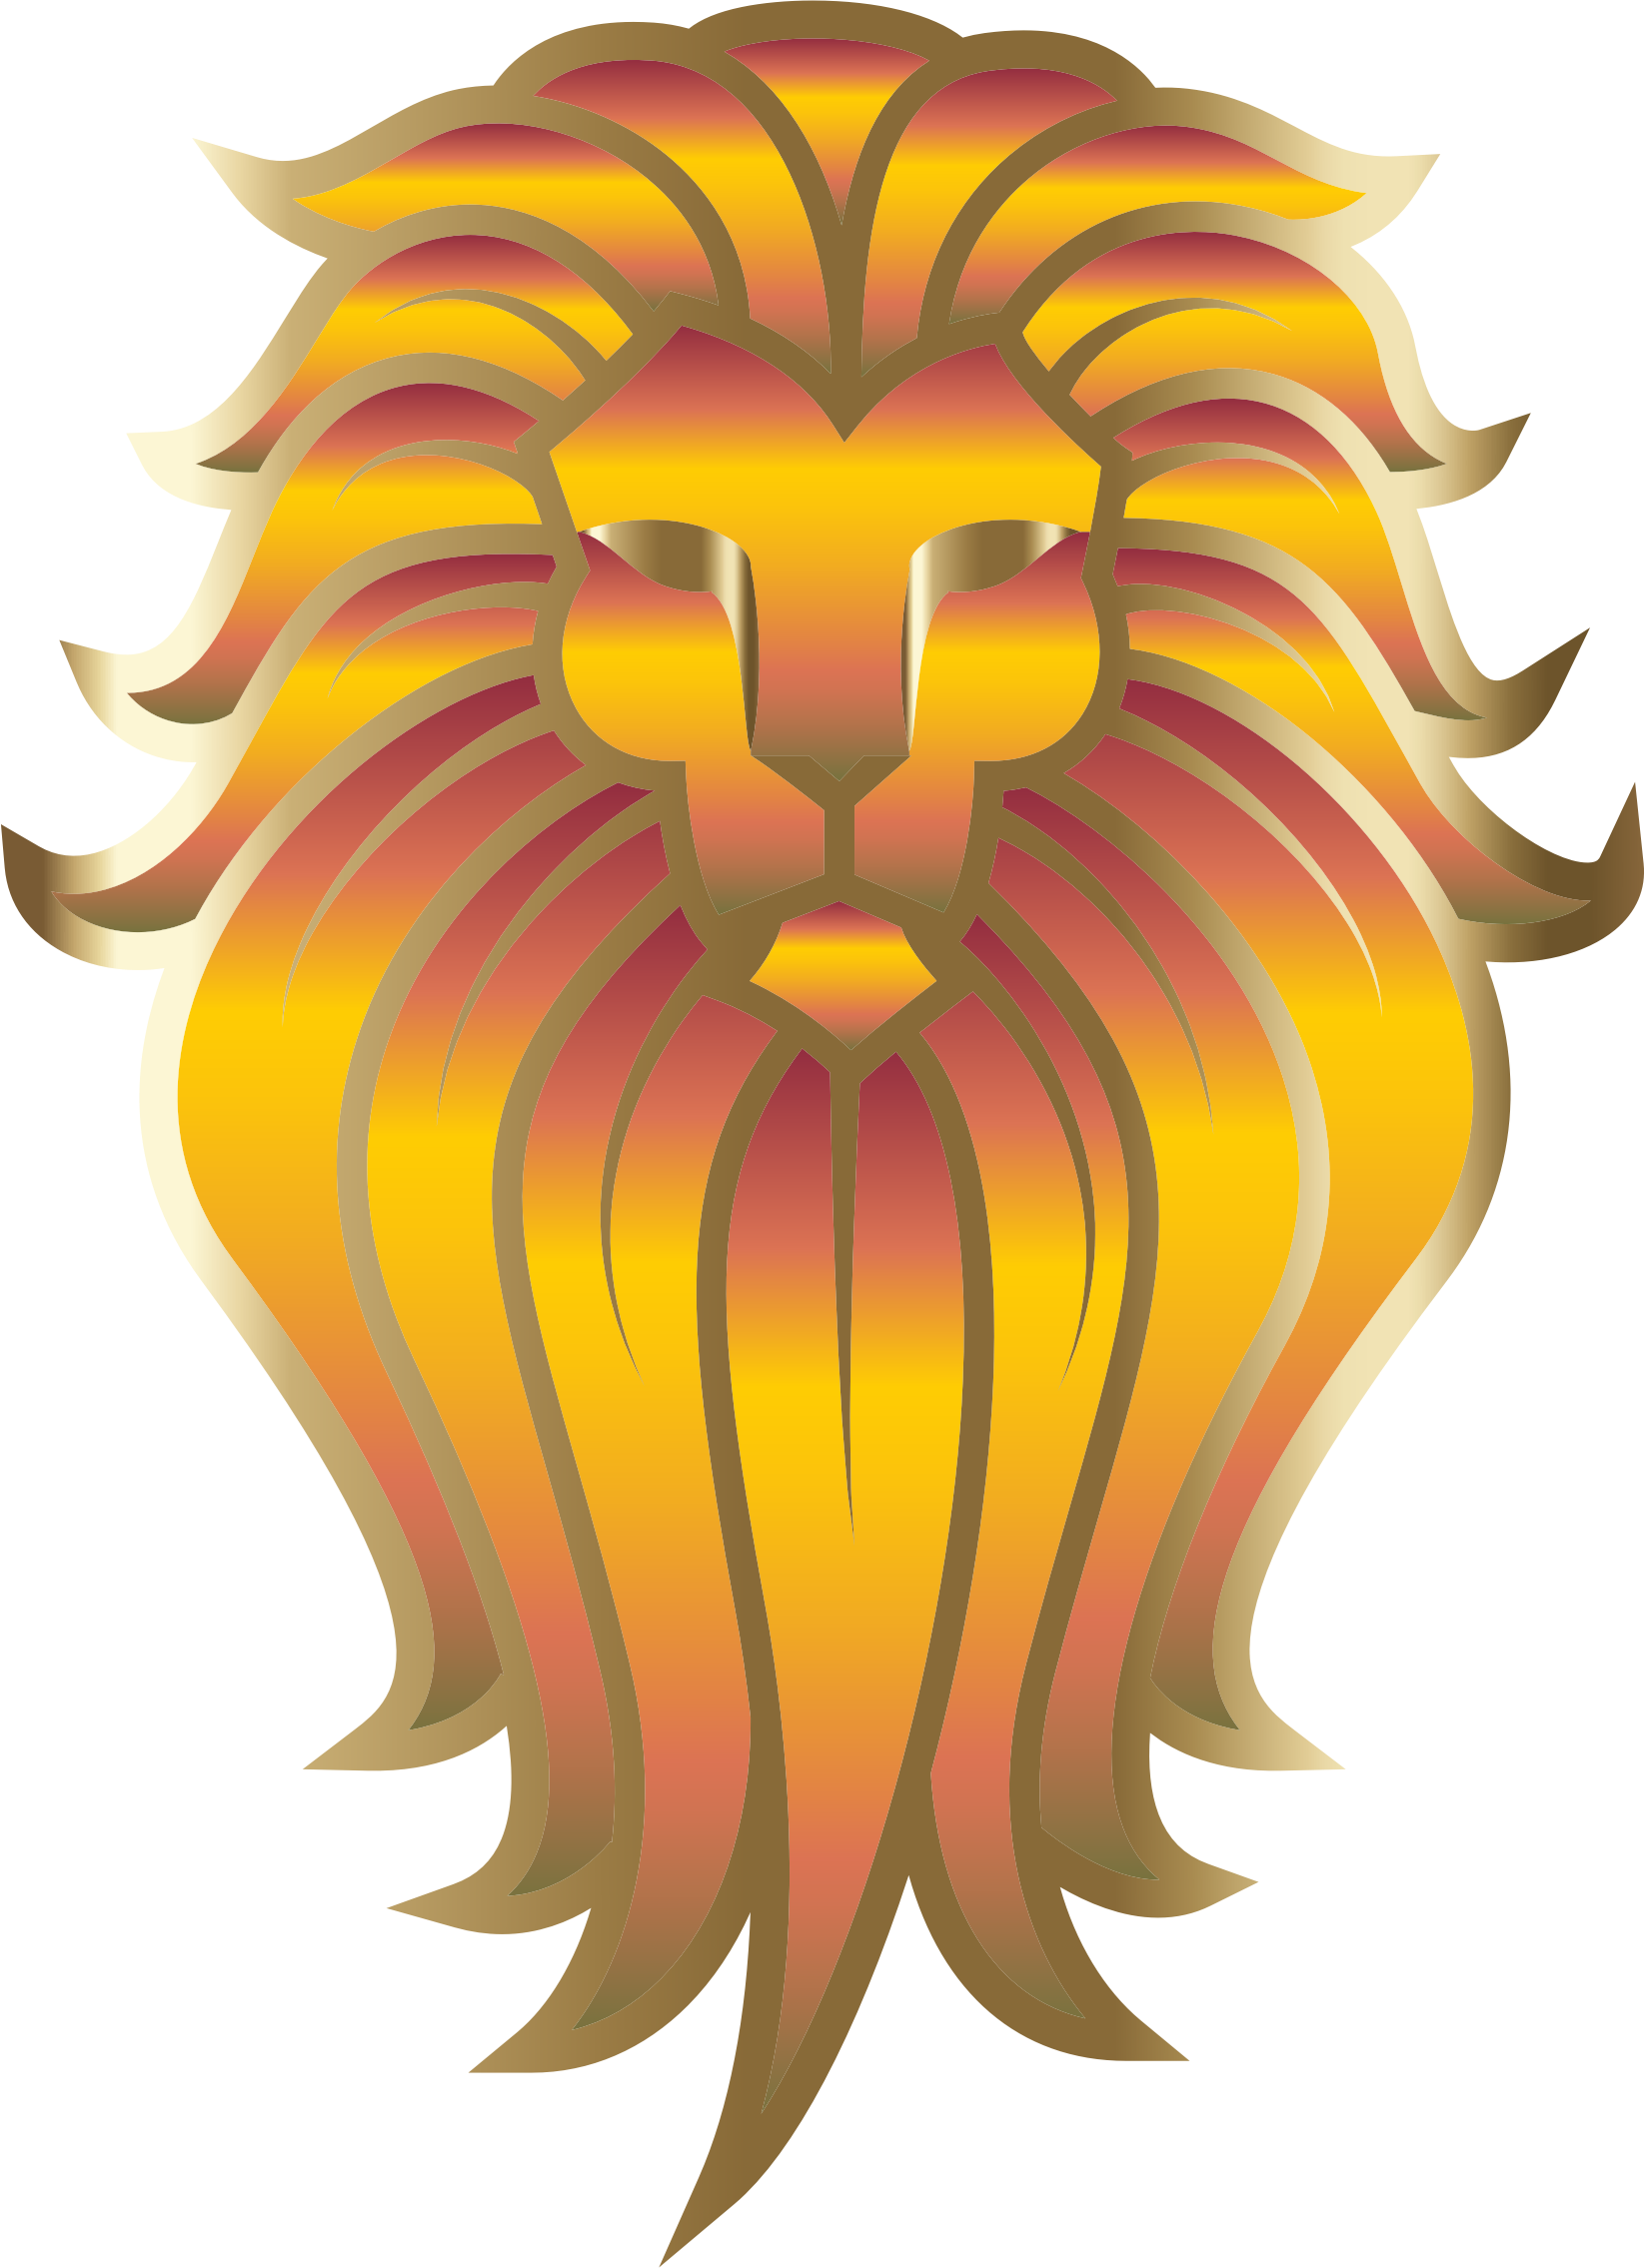 Face clipart lion. Chromatic tattoo no background